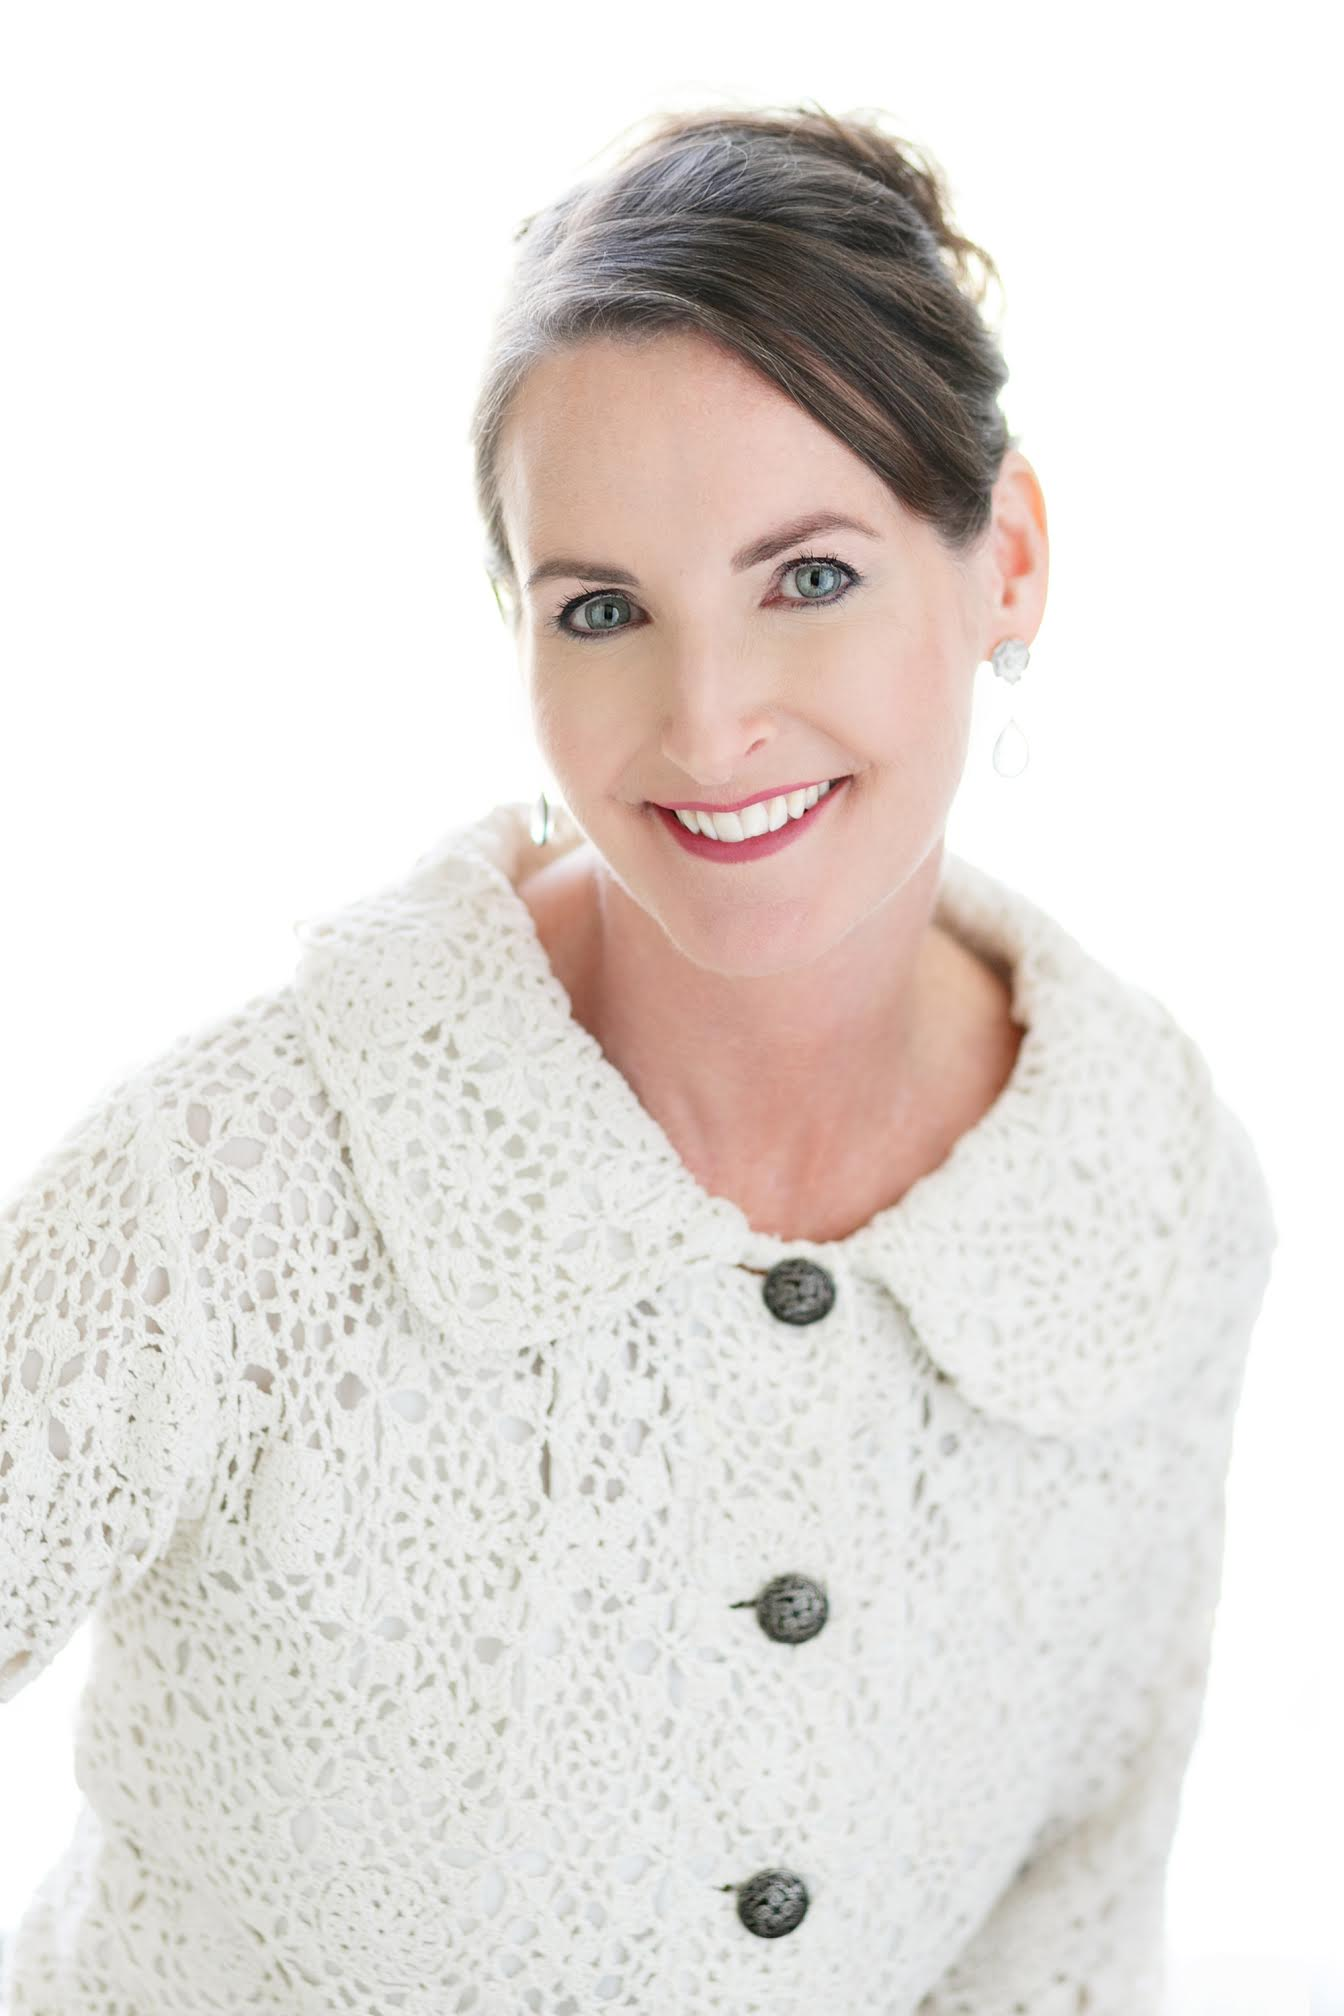 Alison O'Neil to Speak at Face & Body Southeast in Atlanta